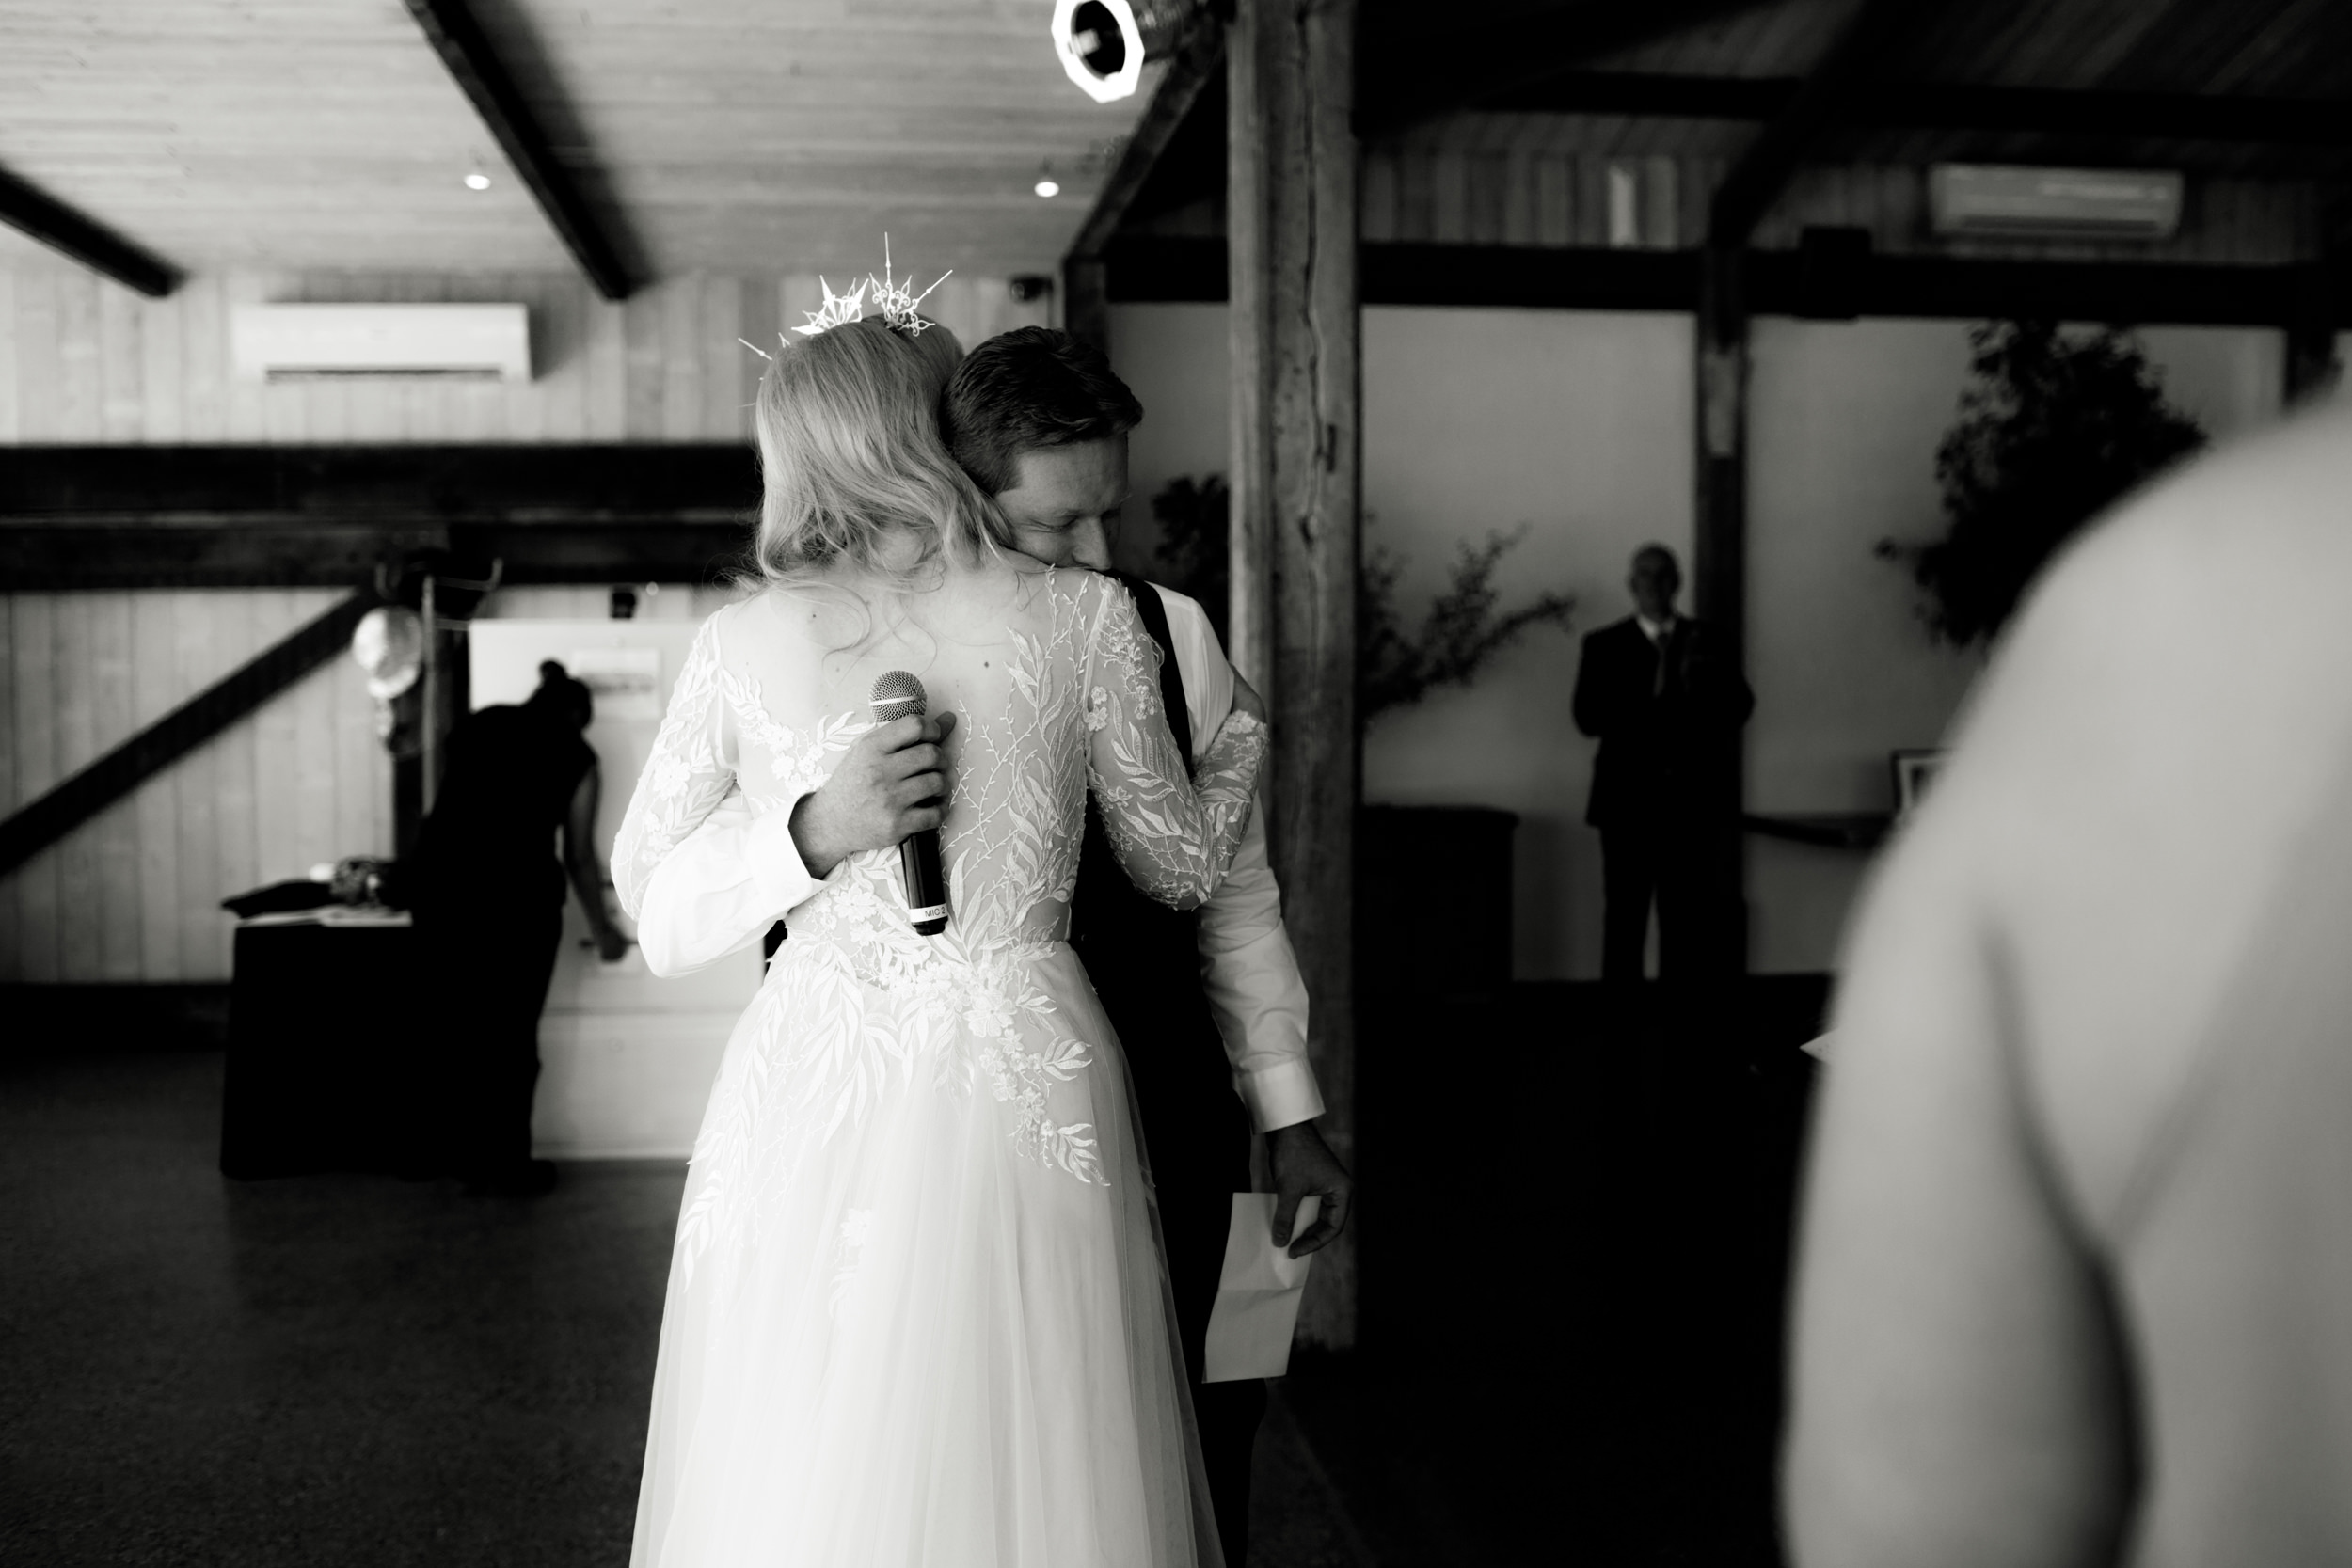 I-Got-You-Babe-&.Co.-Stones-of-the-Yarra-Valley-Wedding-Beverly-Ross0161.JPG